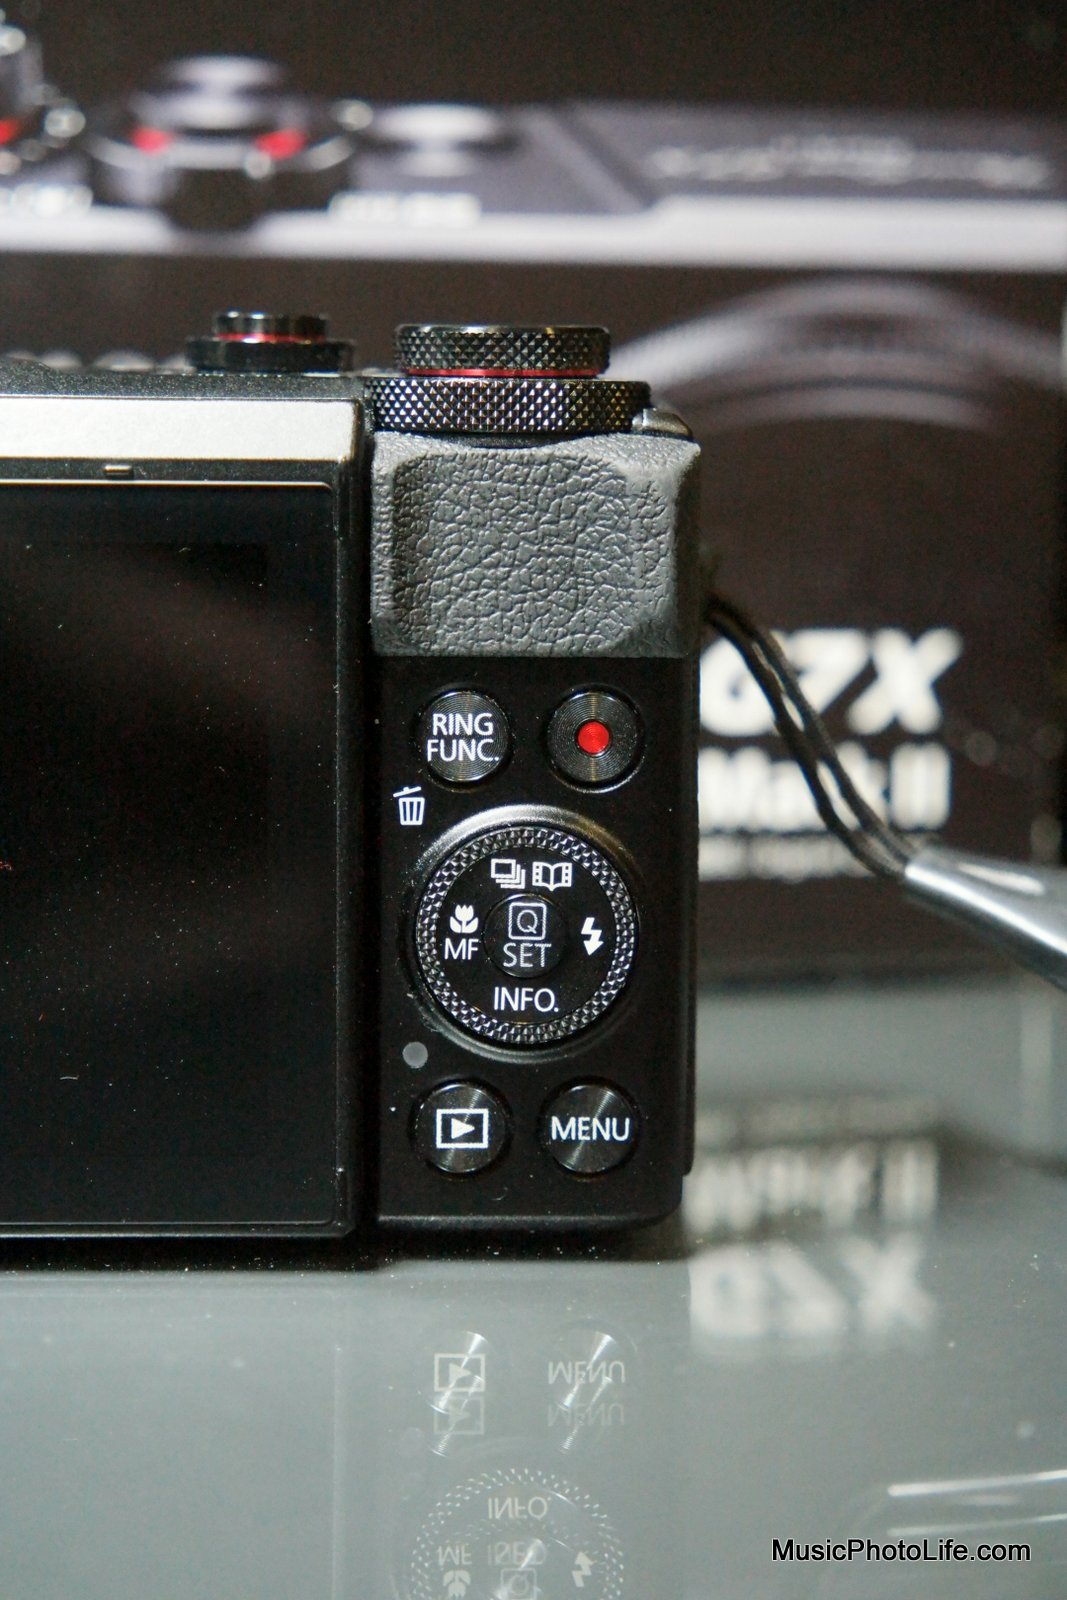 Canon G7X Mark II review by musicphotolife.com